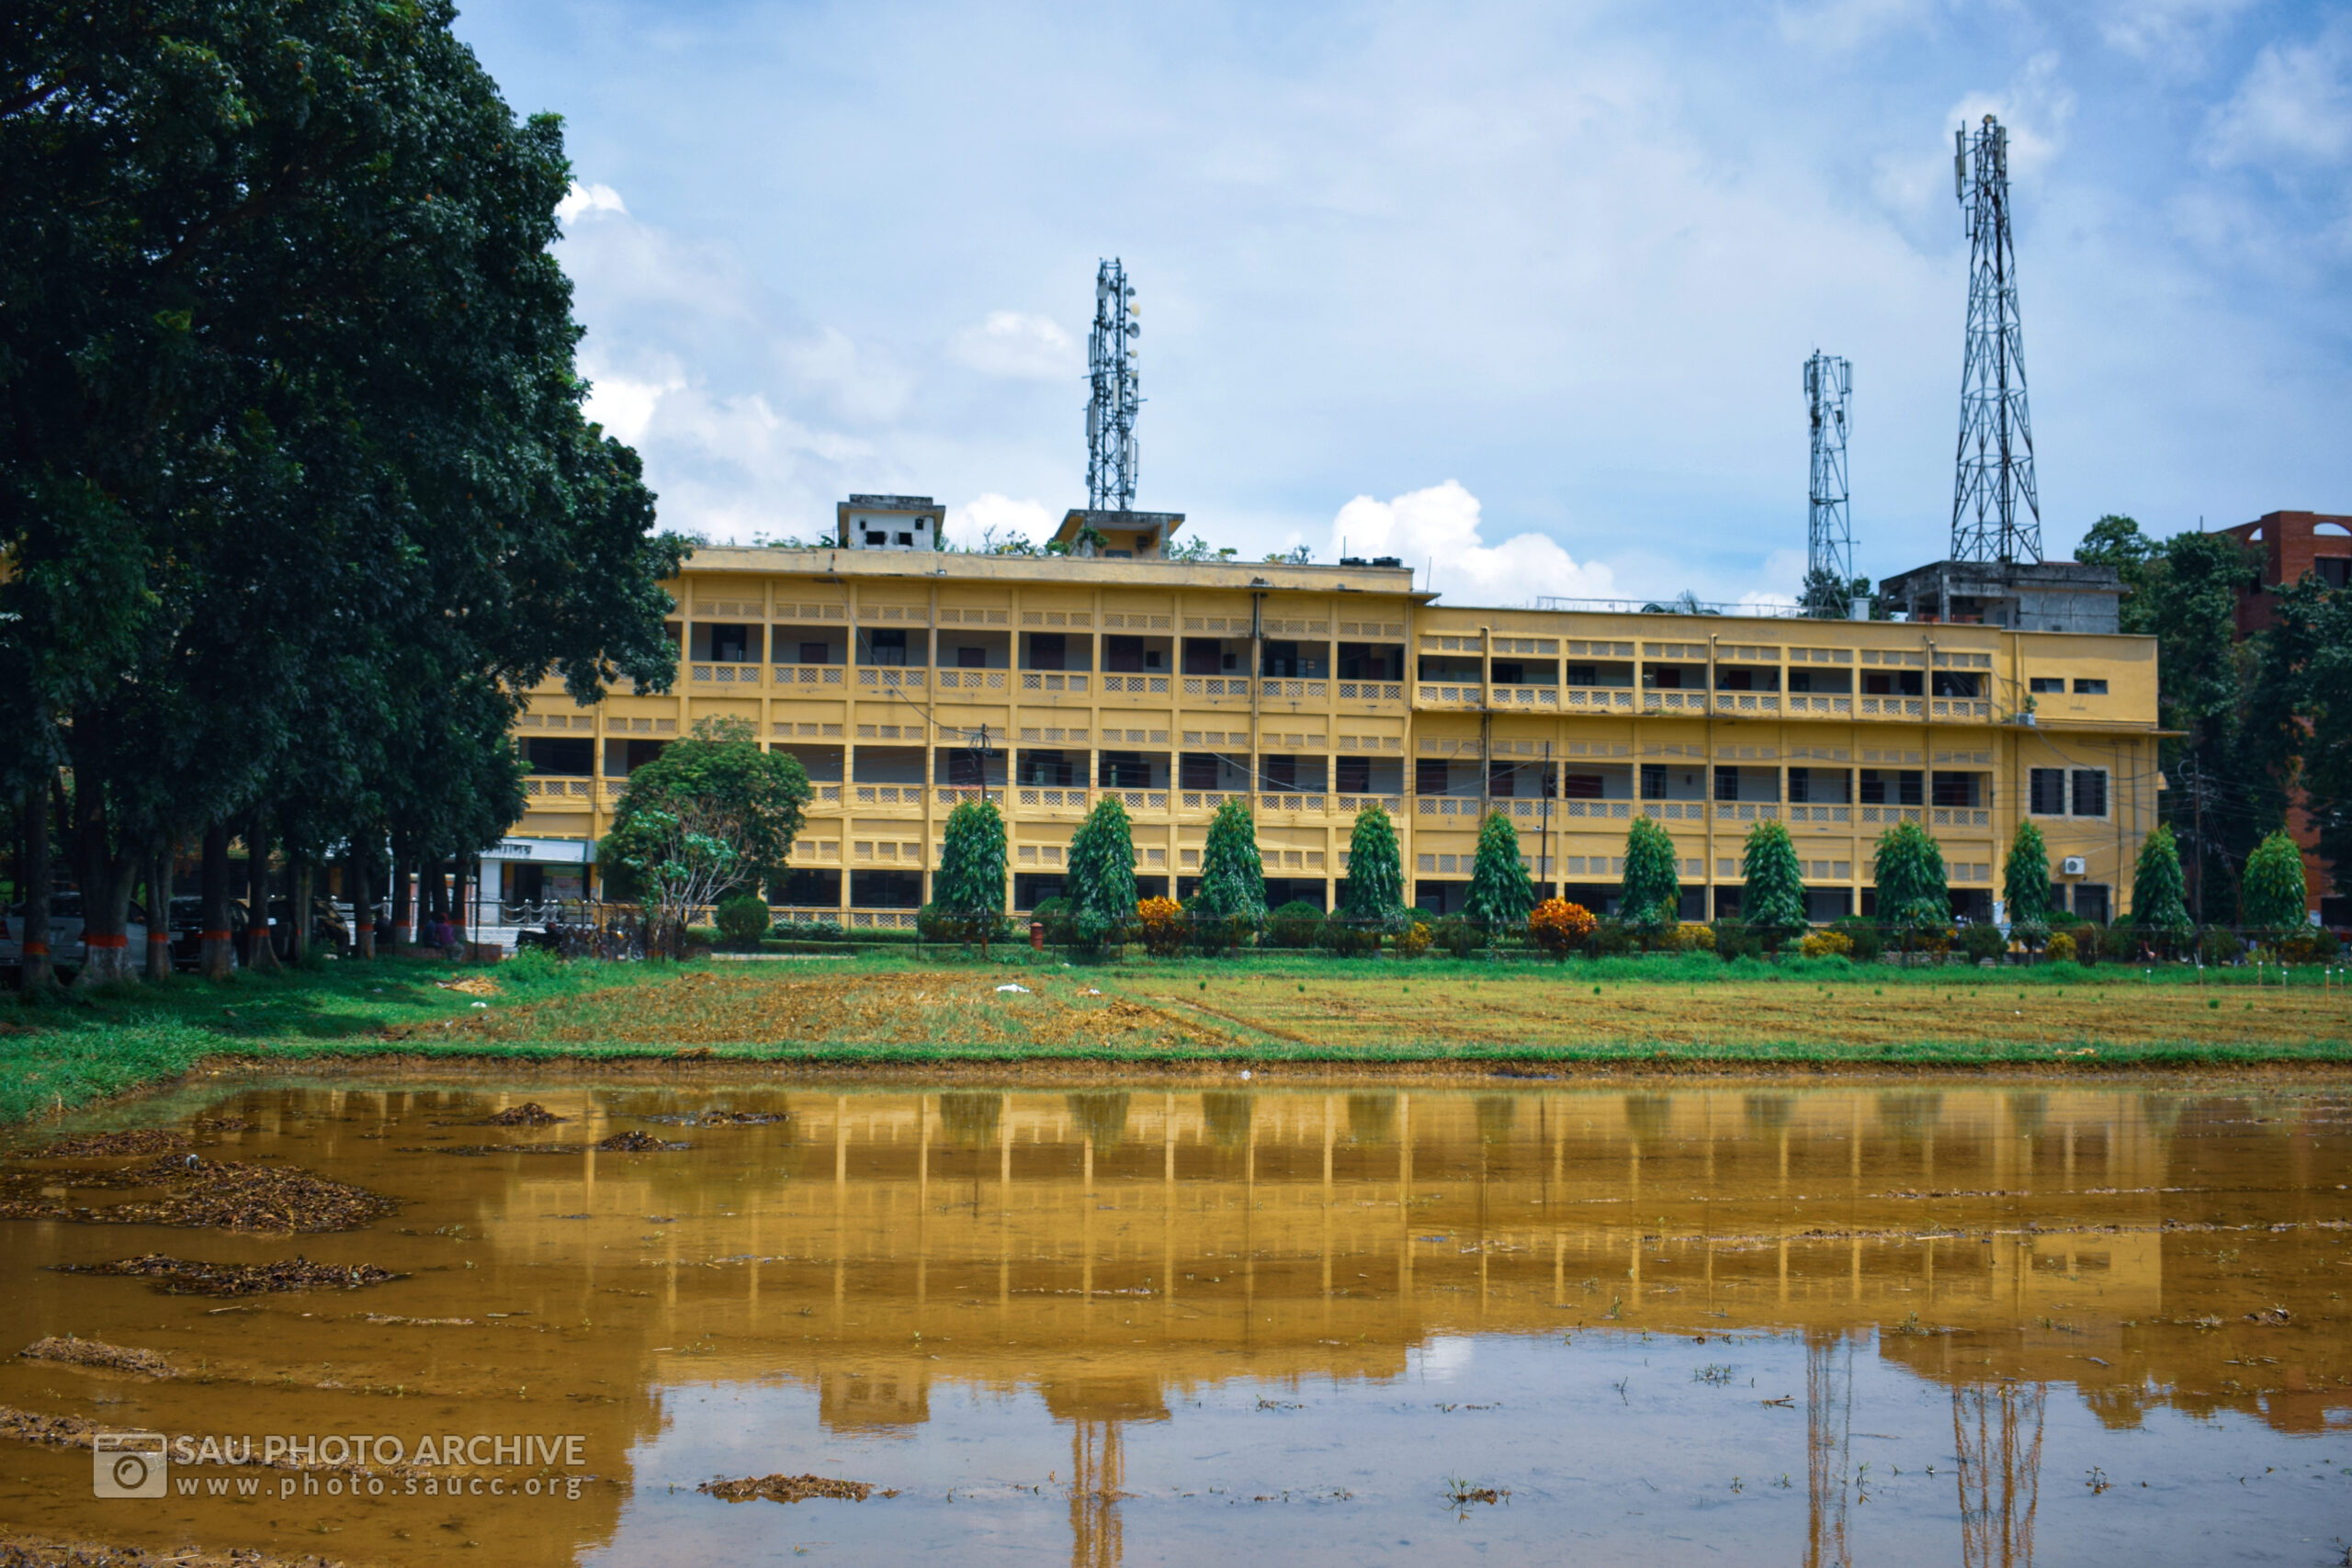 A Reflection photo is captured by Ahmed Imran Halimi at Sher-e-Bangla Agricultural University titled Reflection of Academic Building